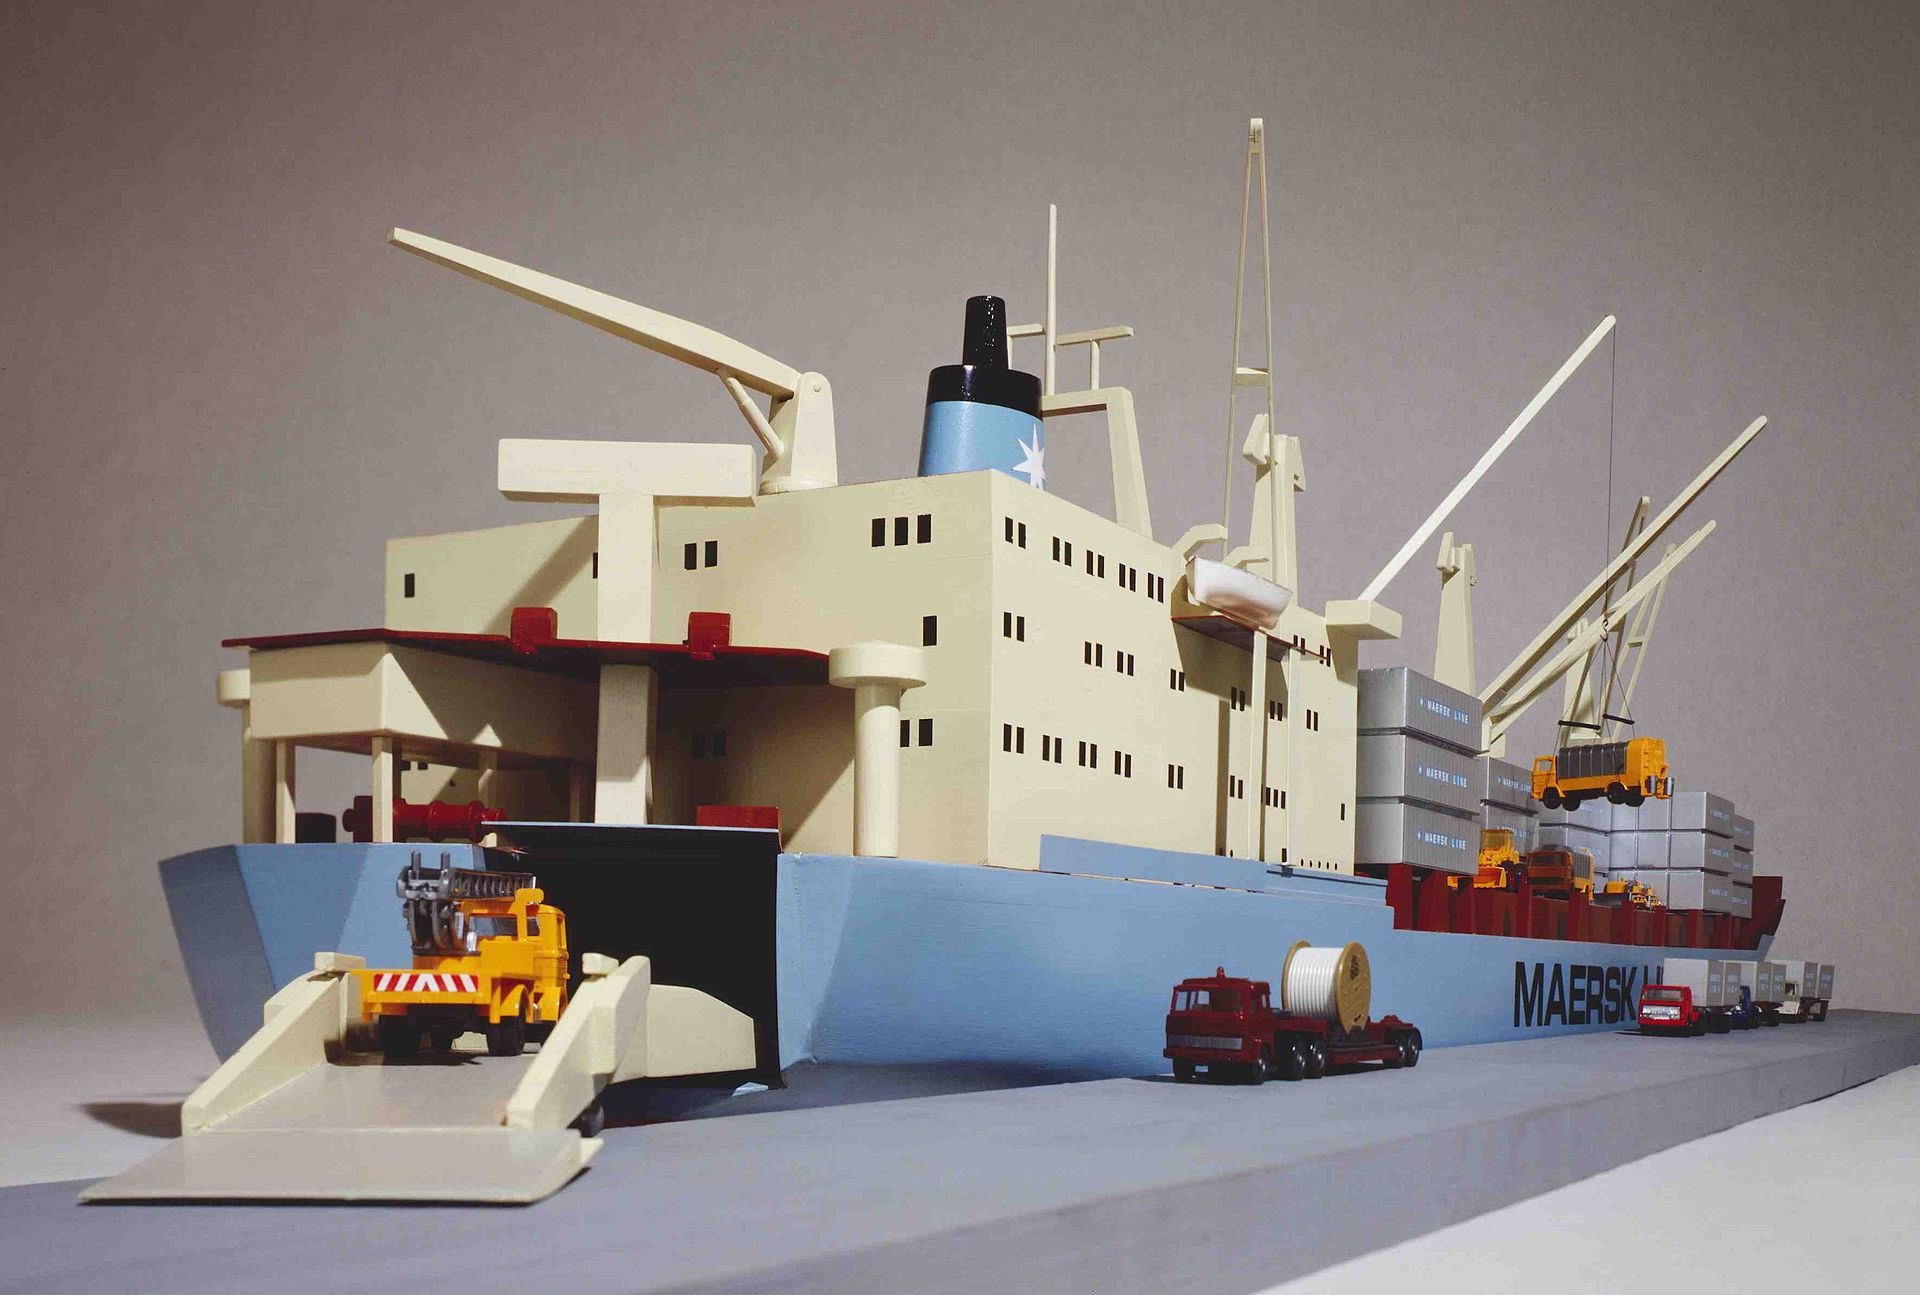 model_of_elisabeth_maersk_1980_7312758386